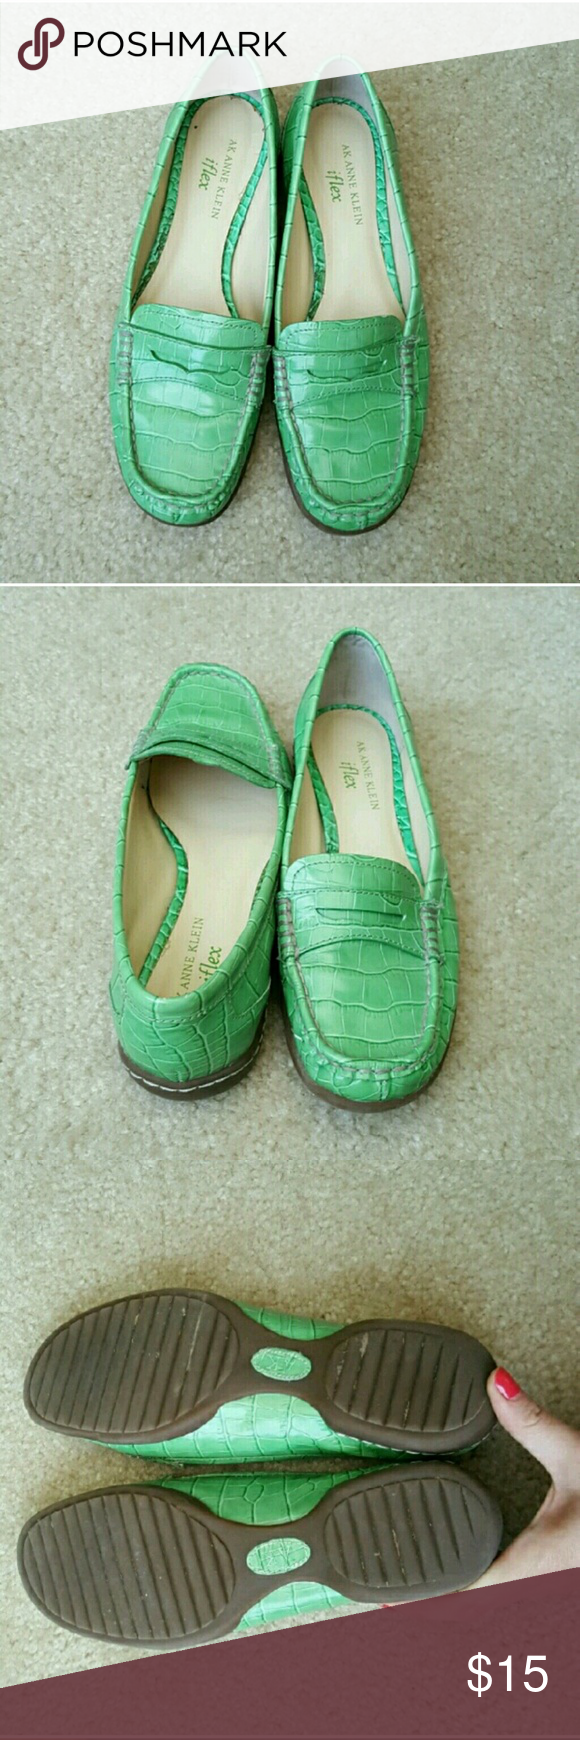 Green Anne Klein iflex Loafers Ridiculously comfortable loafers! Sm. defect shown in photo #4. Worn twice by original owner, am re~POSH'G, they didn't fit ???? 7.5 med. Leather upper, rubber sole..... Anne Klein Shoes Flats & Loafers